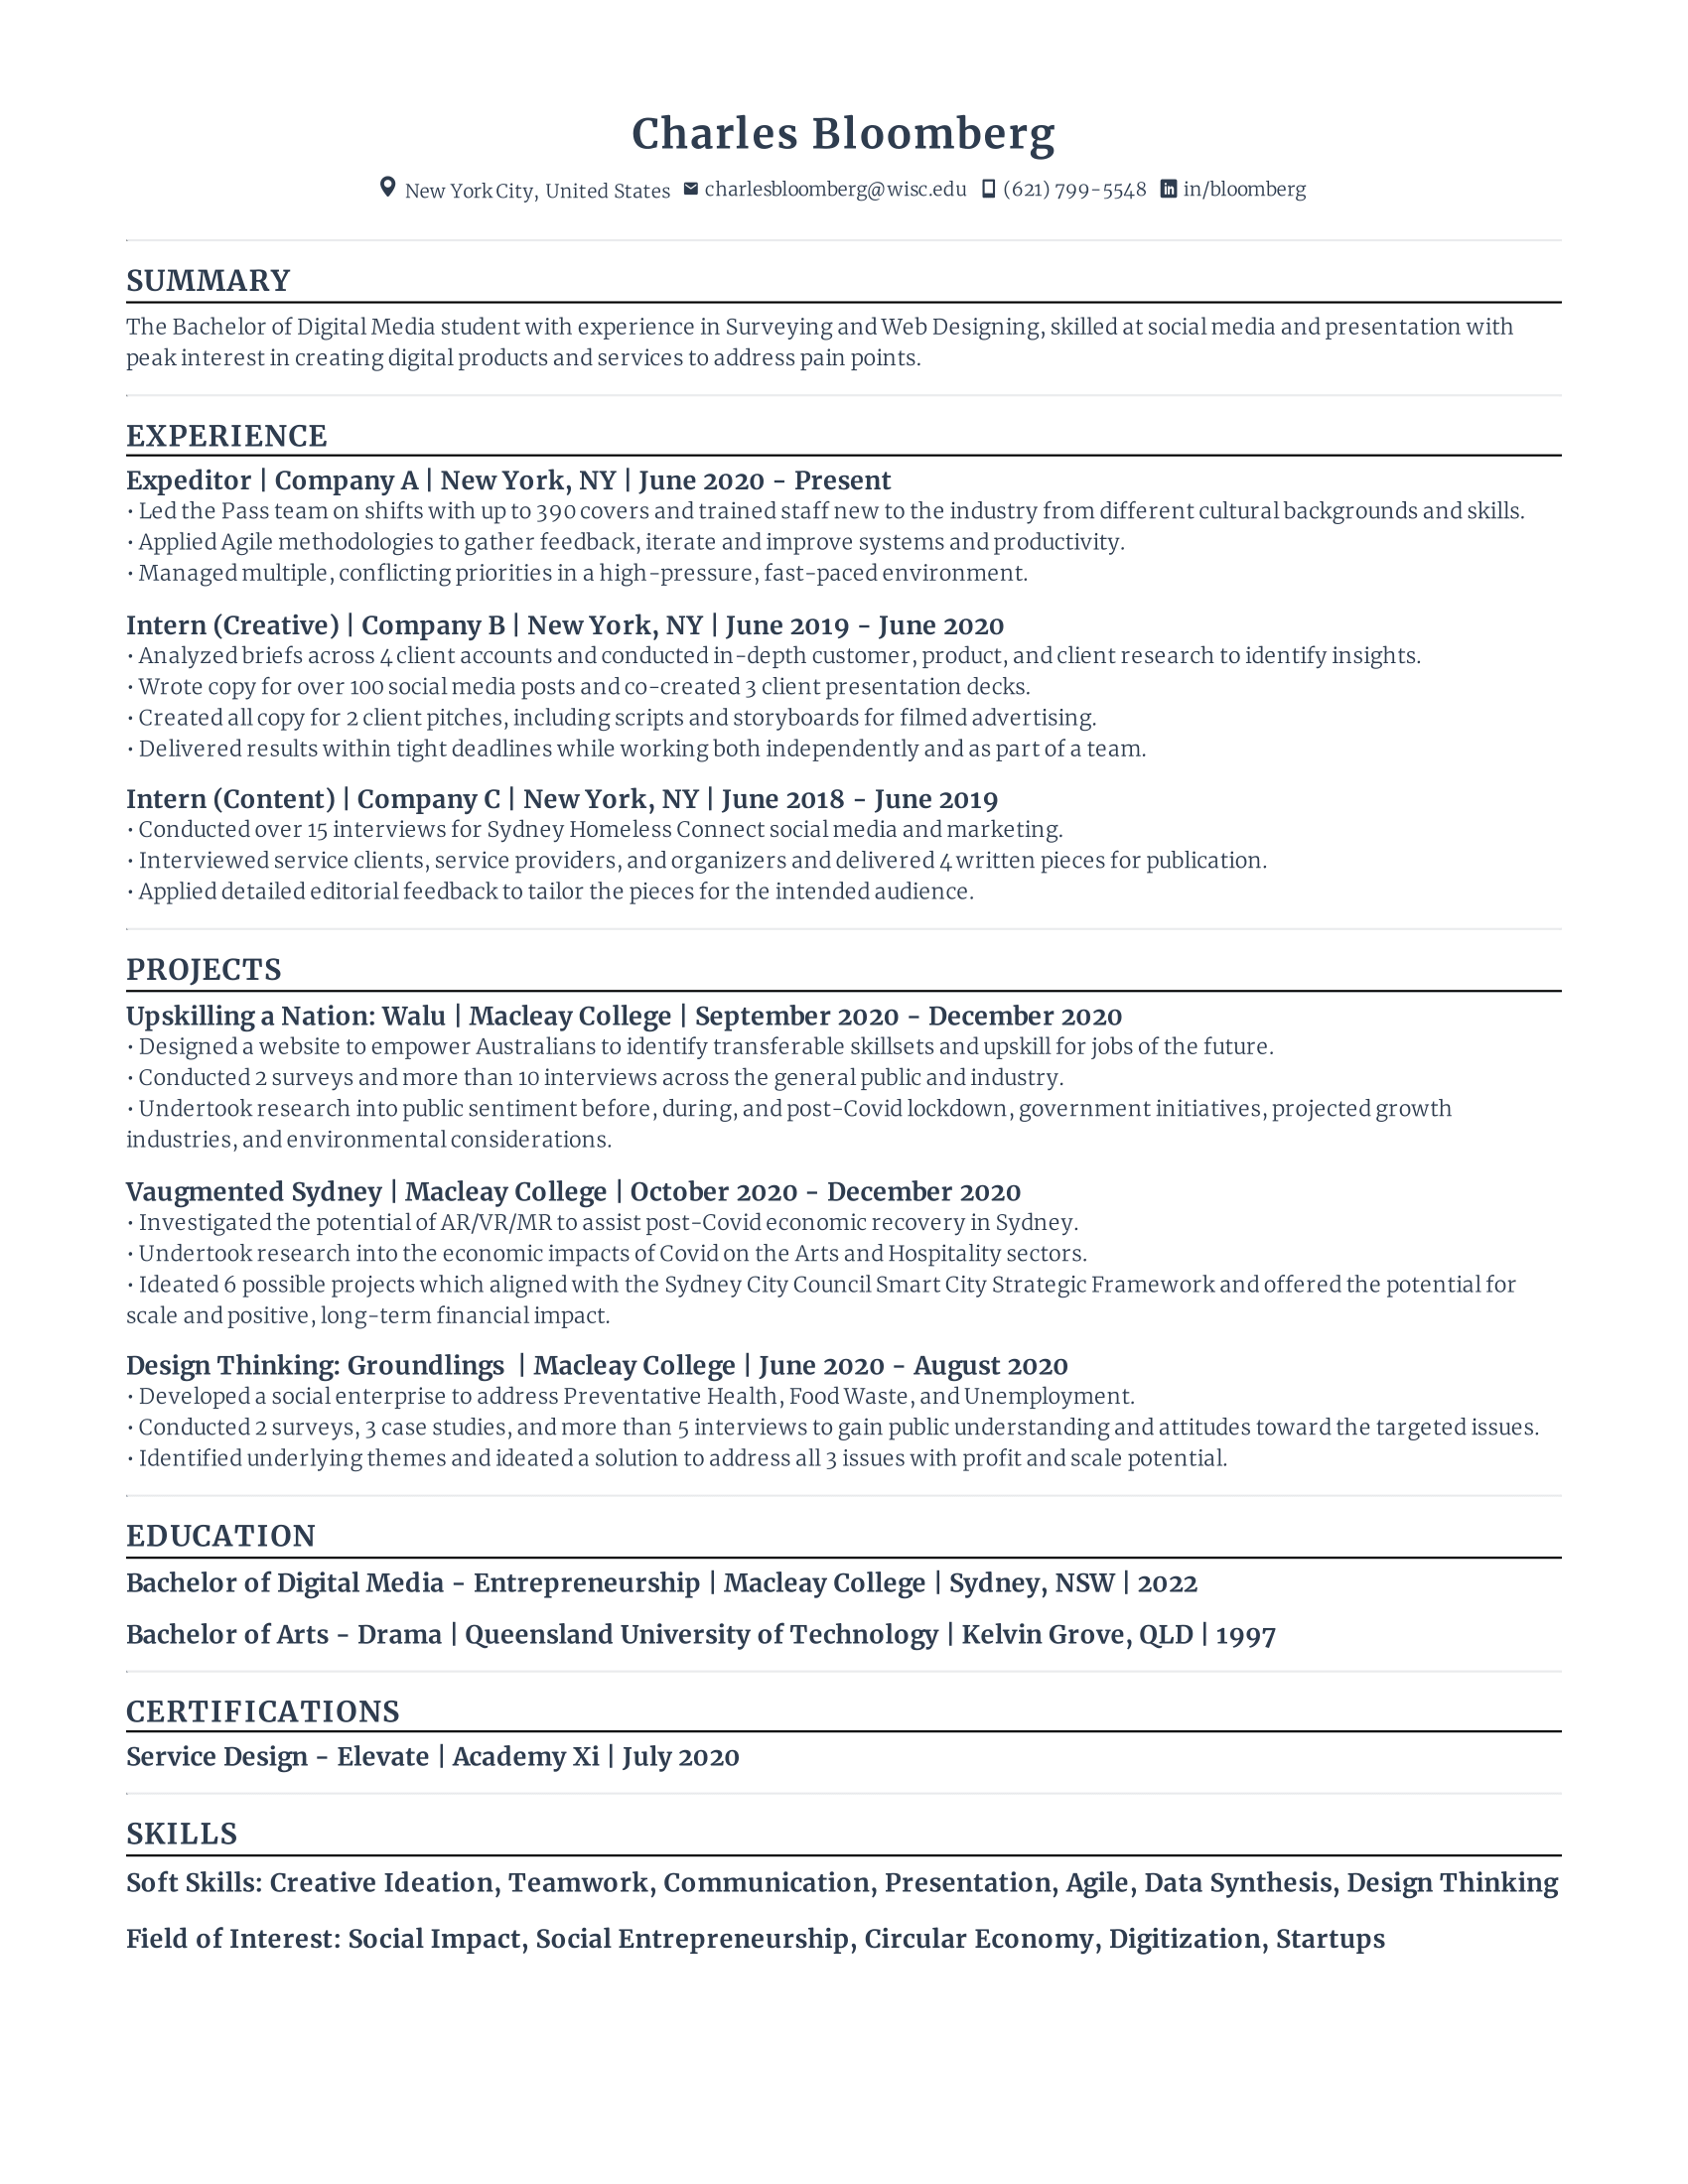 Assistant policy Intern